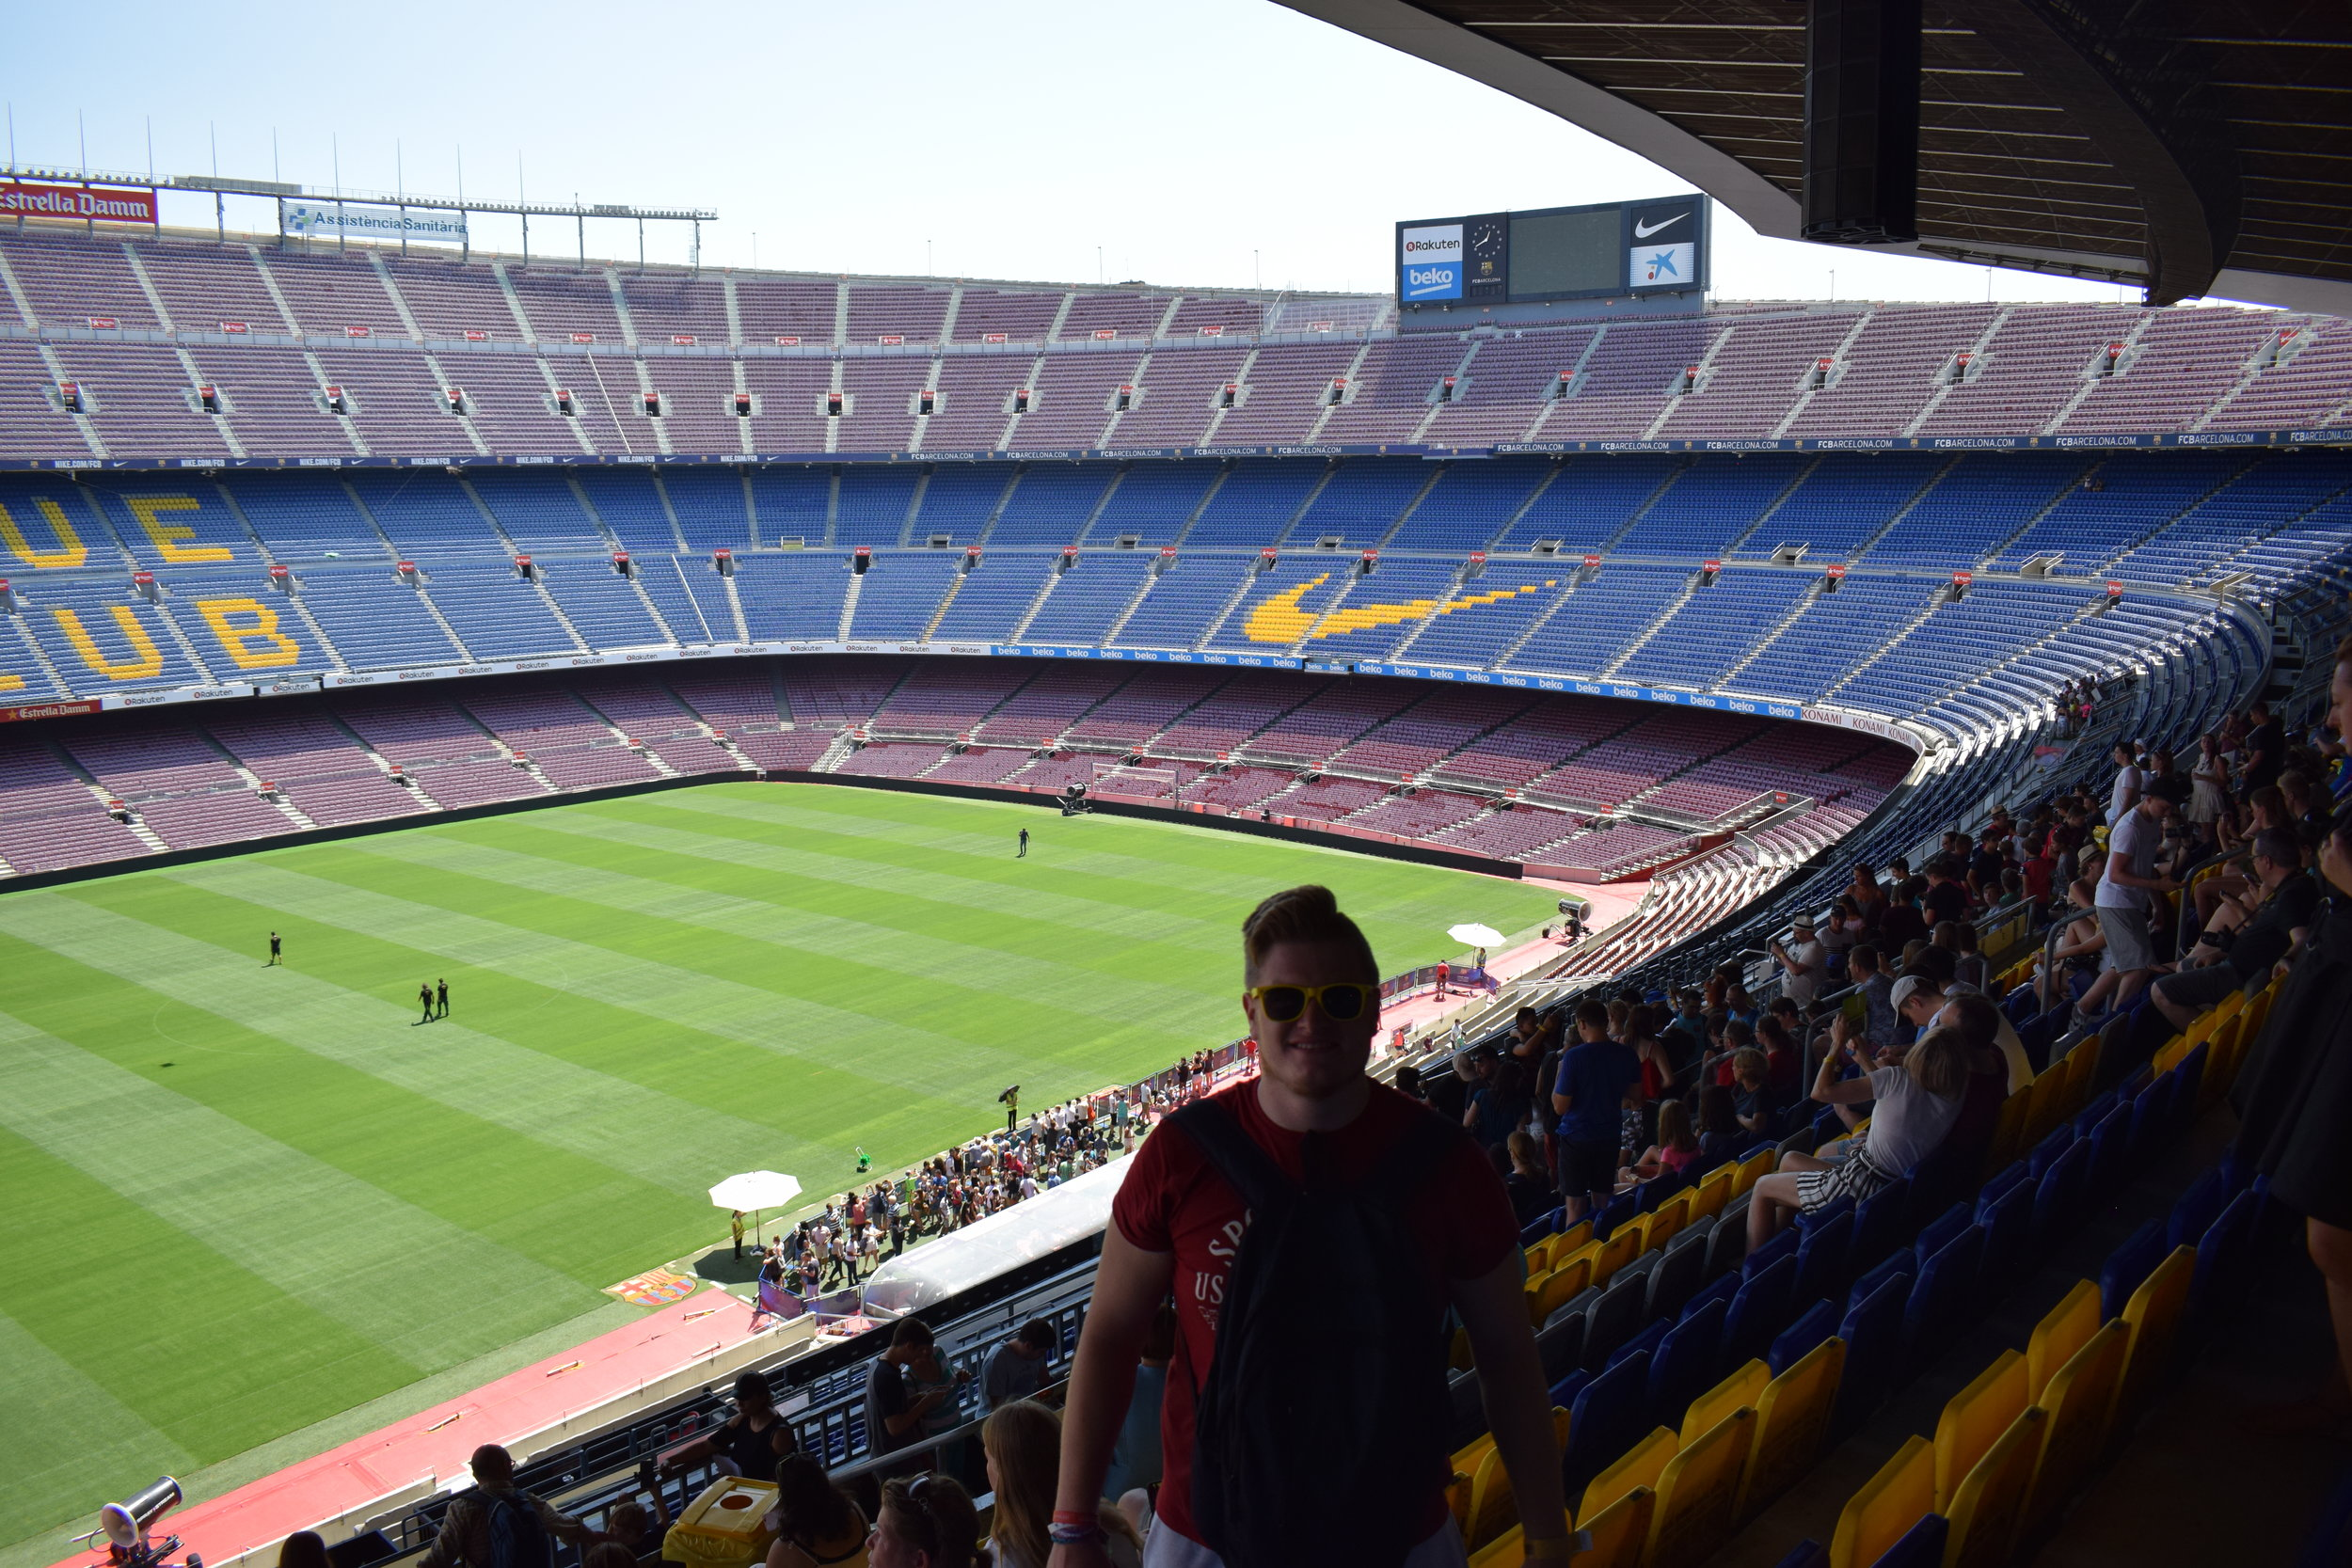 At Camp Nou in Barcelona, Spain.